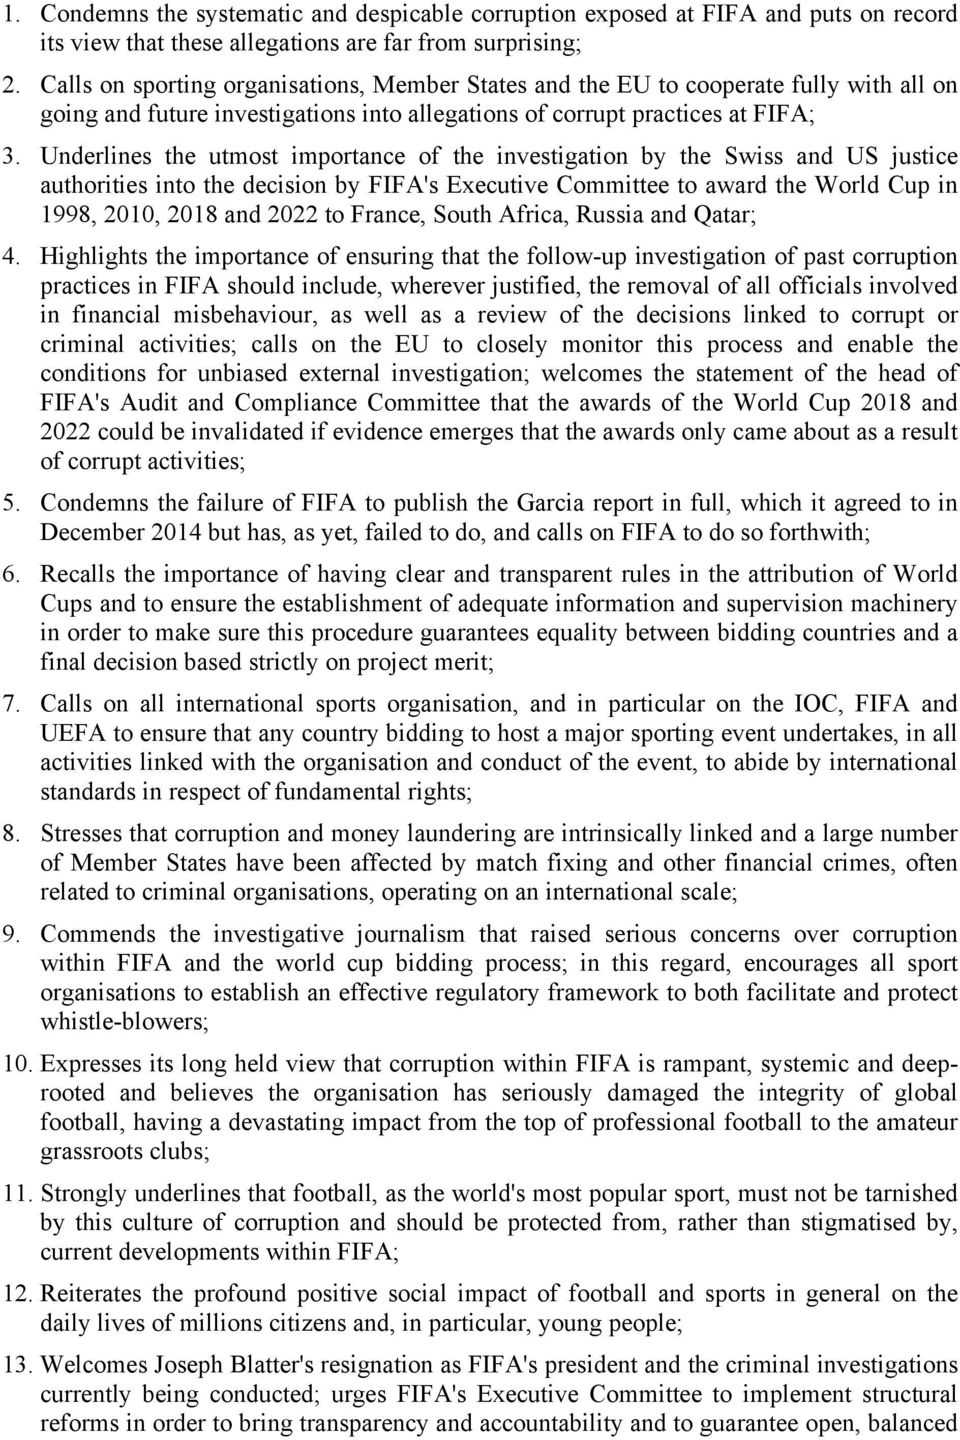 Underlines the utmost importance of the investigation by the Swiss and US justice authorities into the decision by FIFA's Executive Committee to award the World Cup in 1998, 2010, 2018 and 2022 to